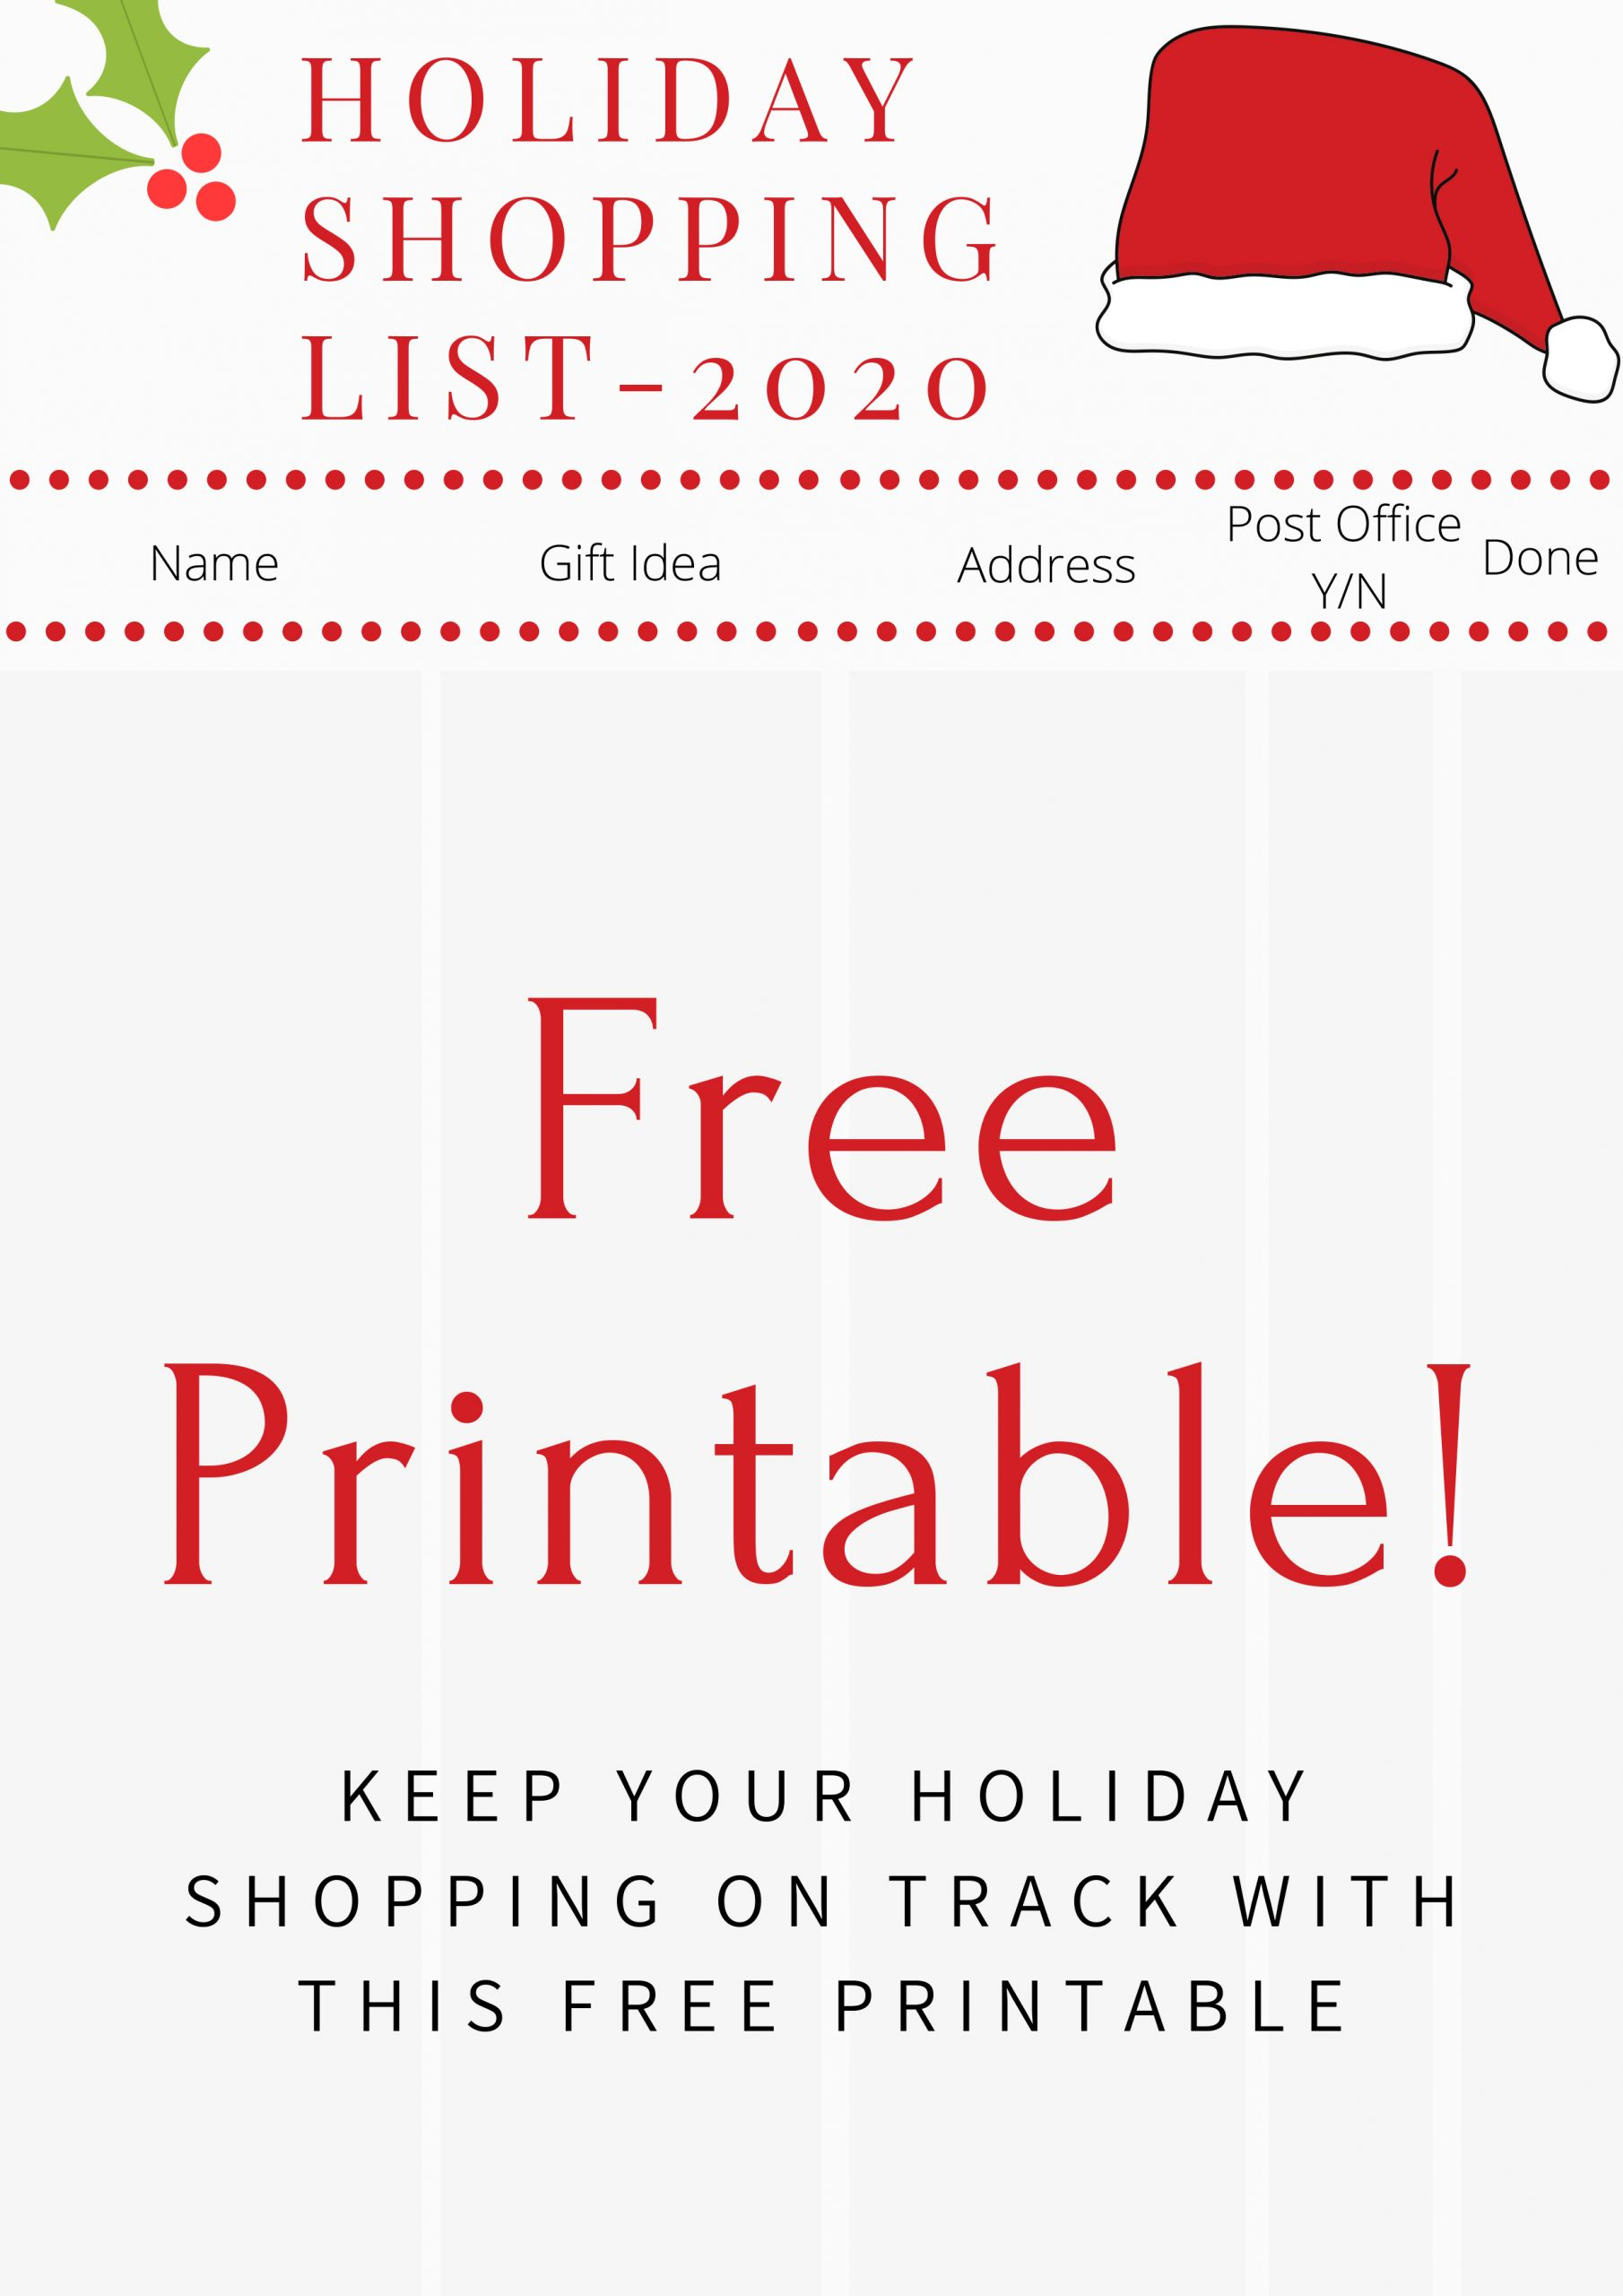 Holiday Shopping List Free Printable 2020